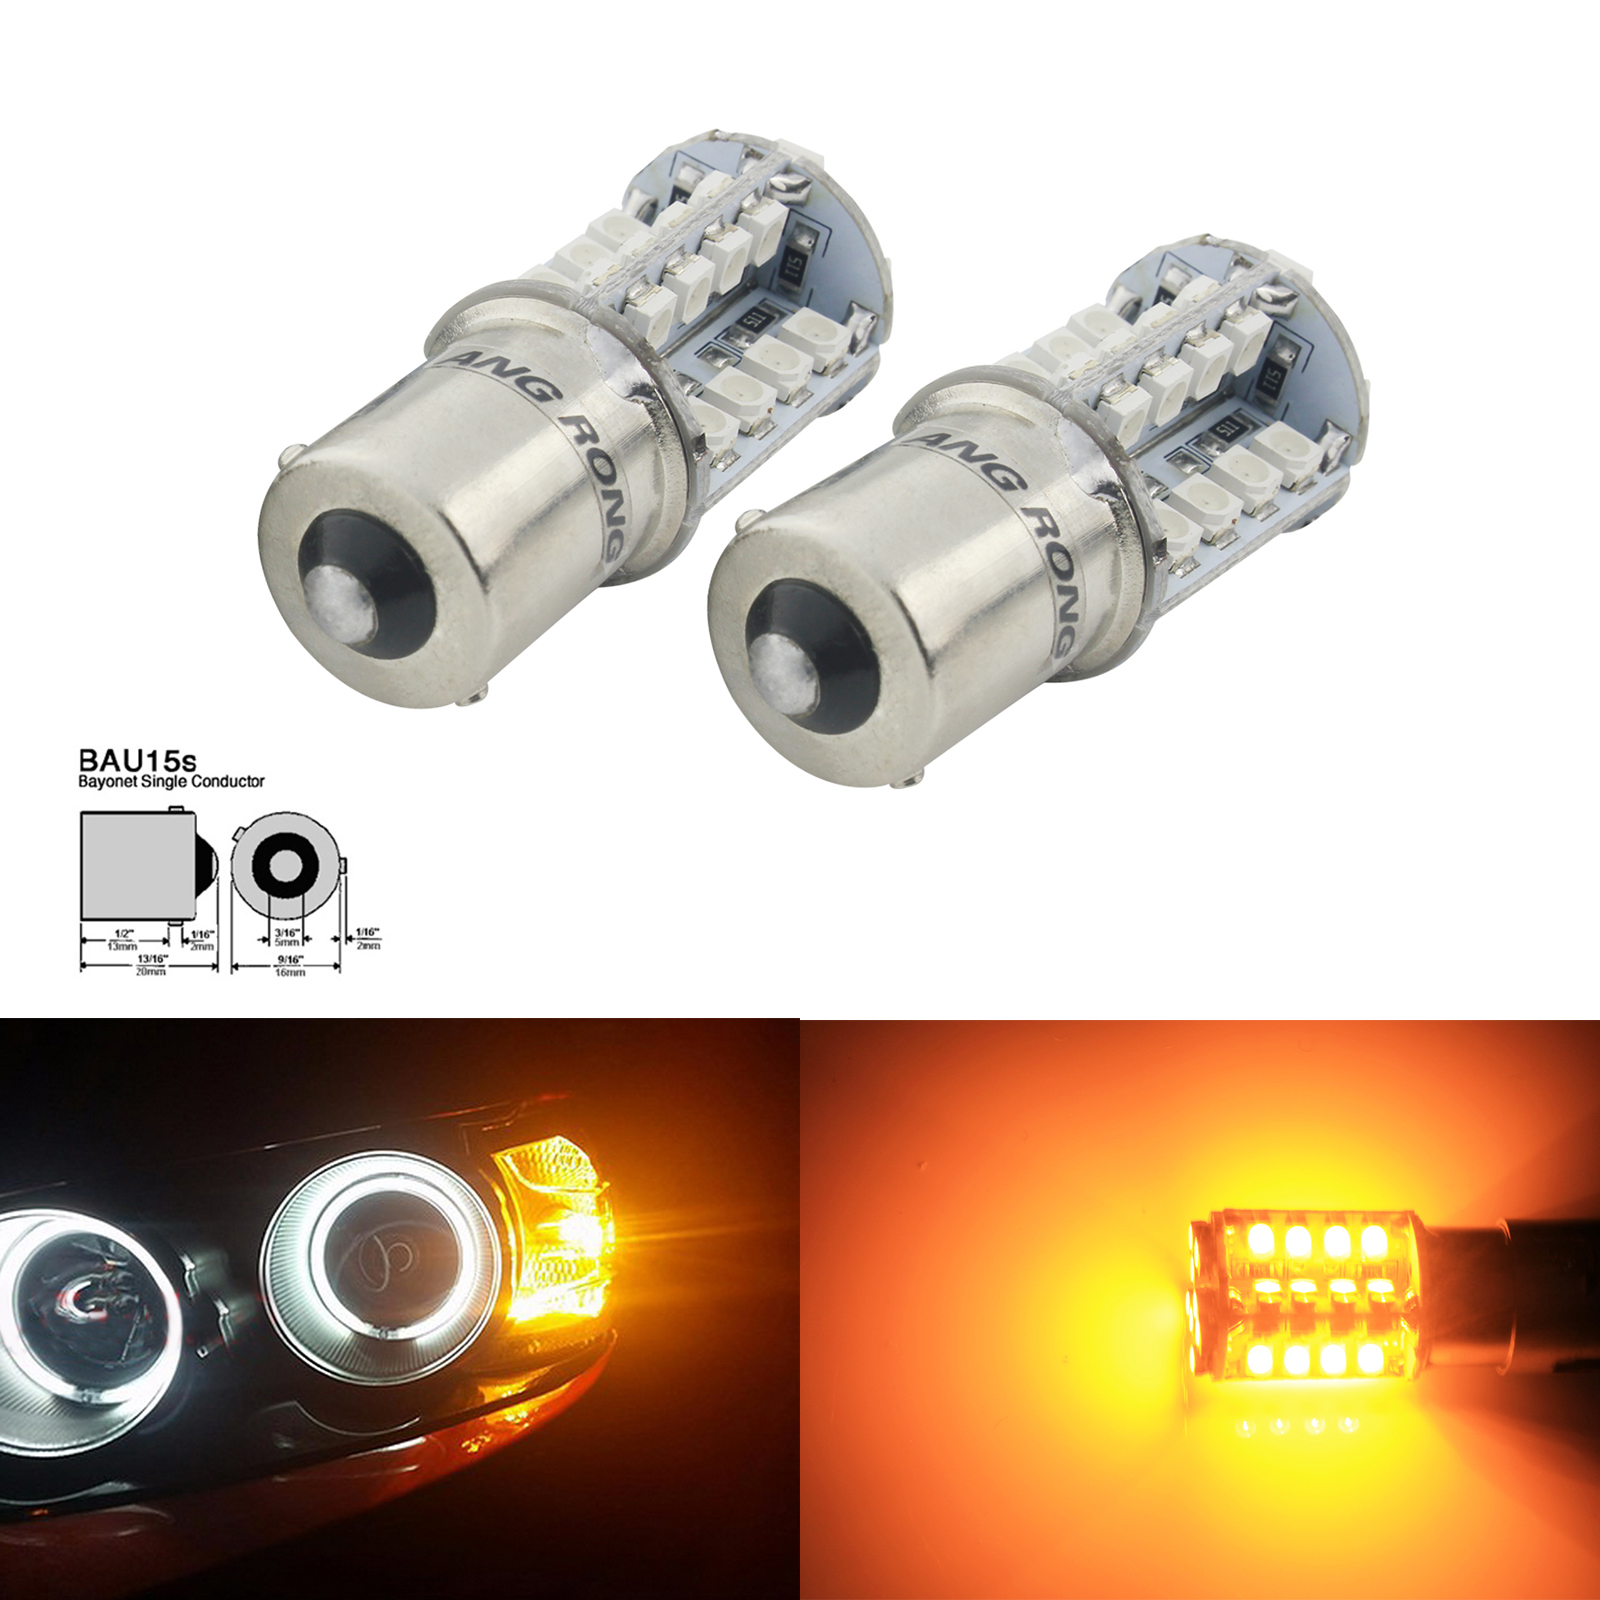 ANGRONG 2x Amber <font><b>Orange</b></font> 40 SMD <font><b>LED</b></font> 581 <font><b>PY21W</b></font> BAU15s P21W RY10W S25 Indicator Signal Front Rear Light 6W image